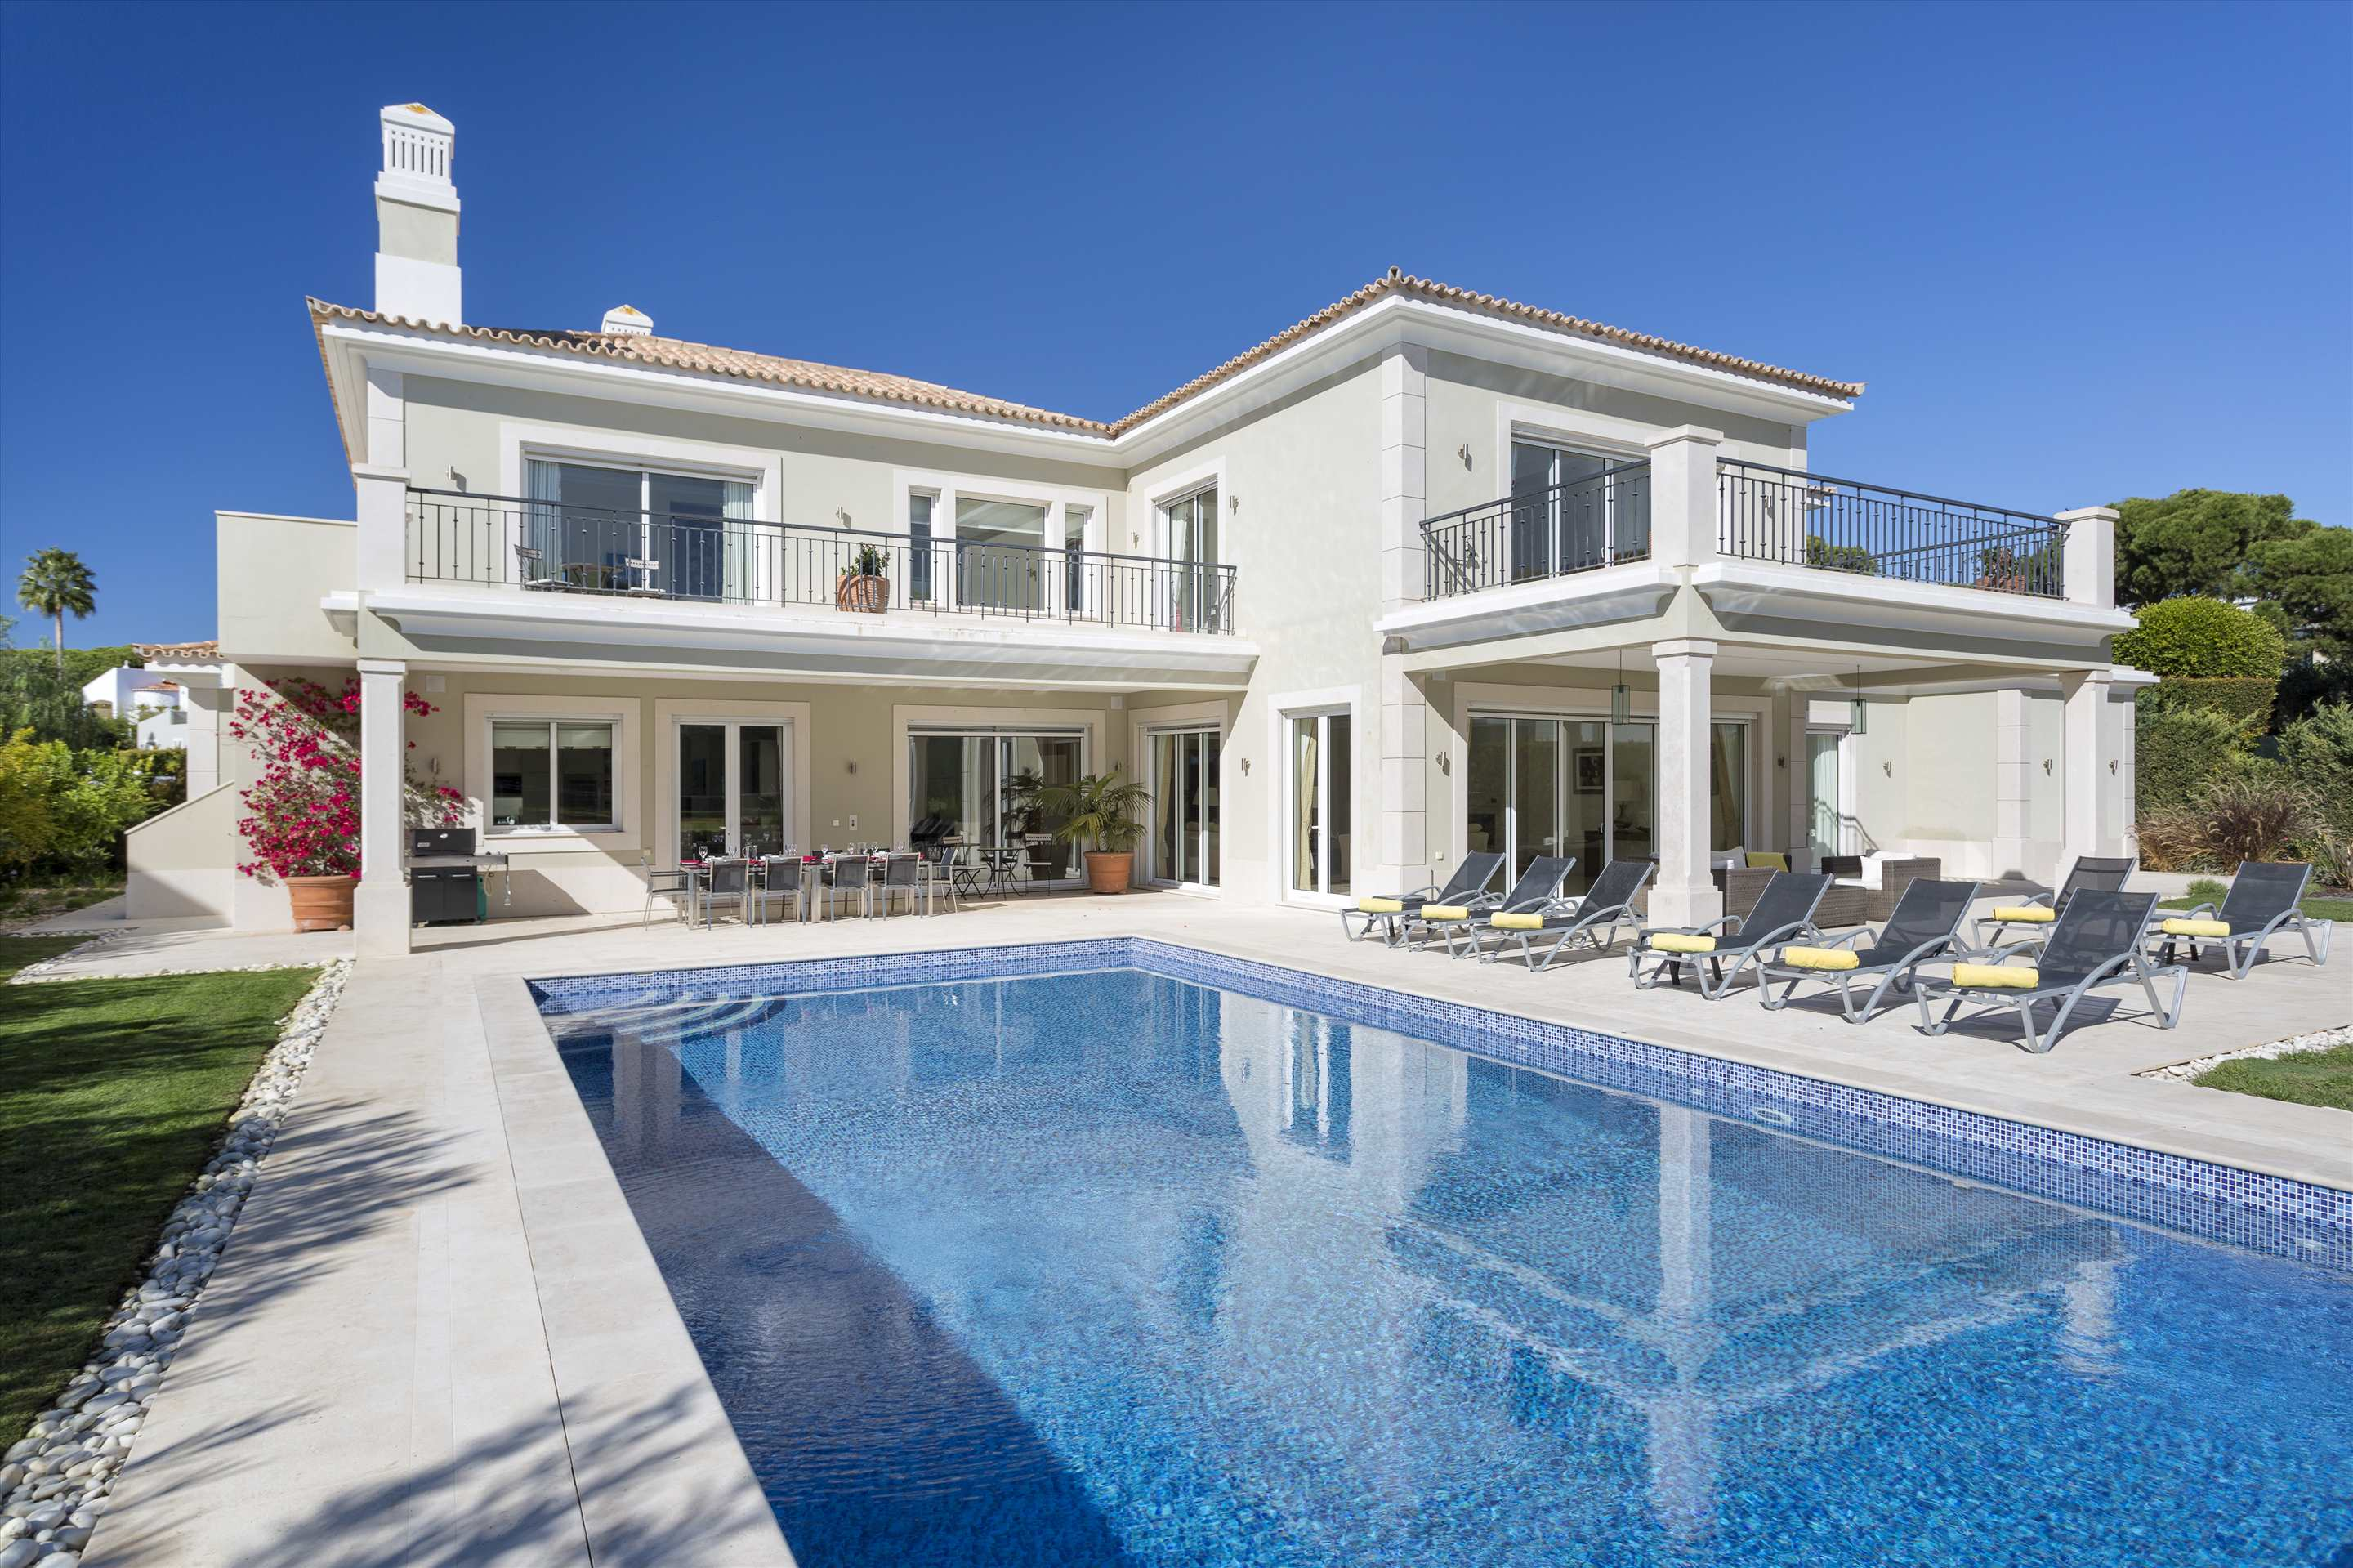 Villa Belissima, 5 bedroom villa in Vale do Lobo, Algarve